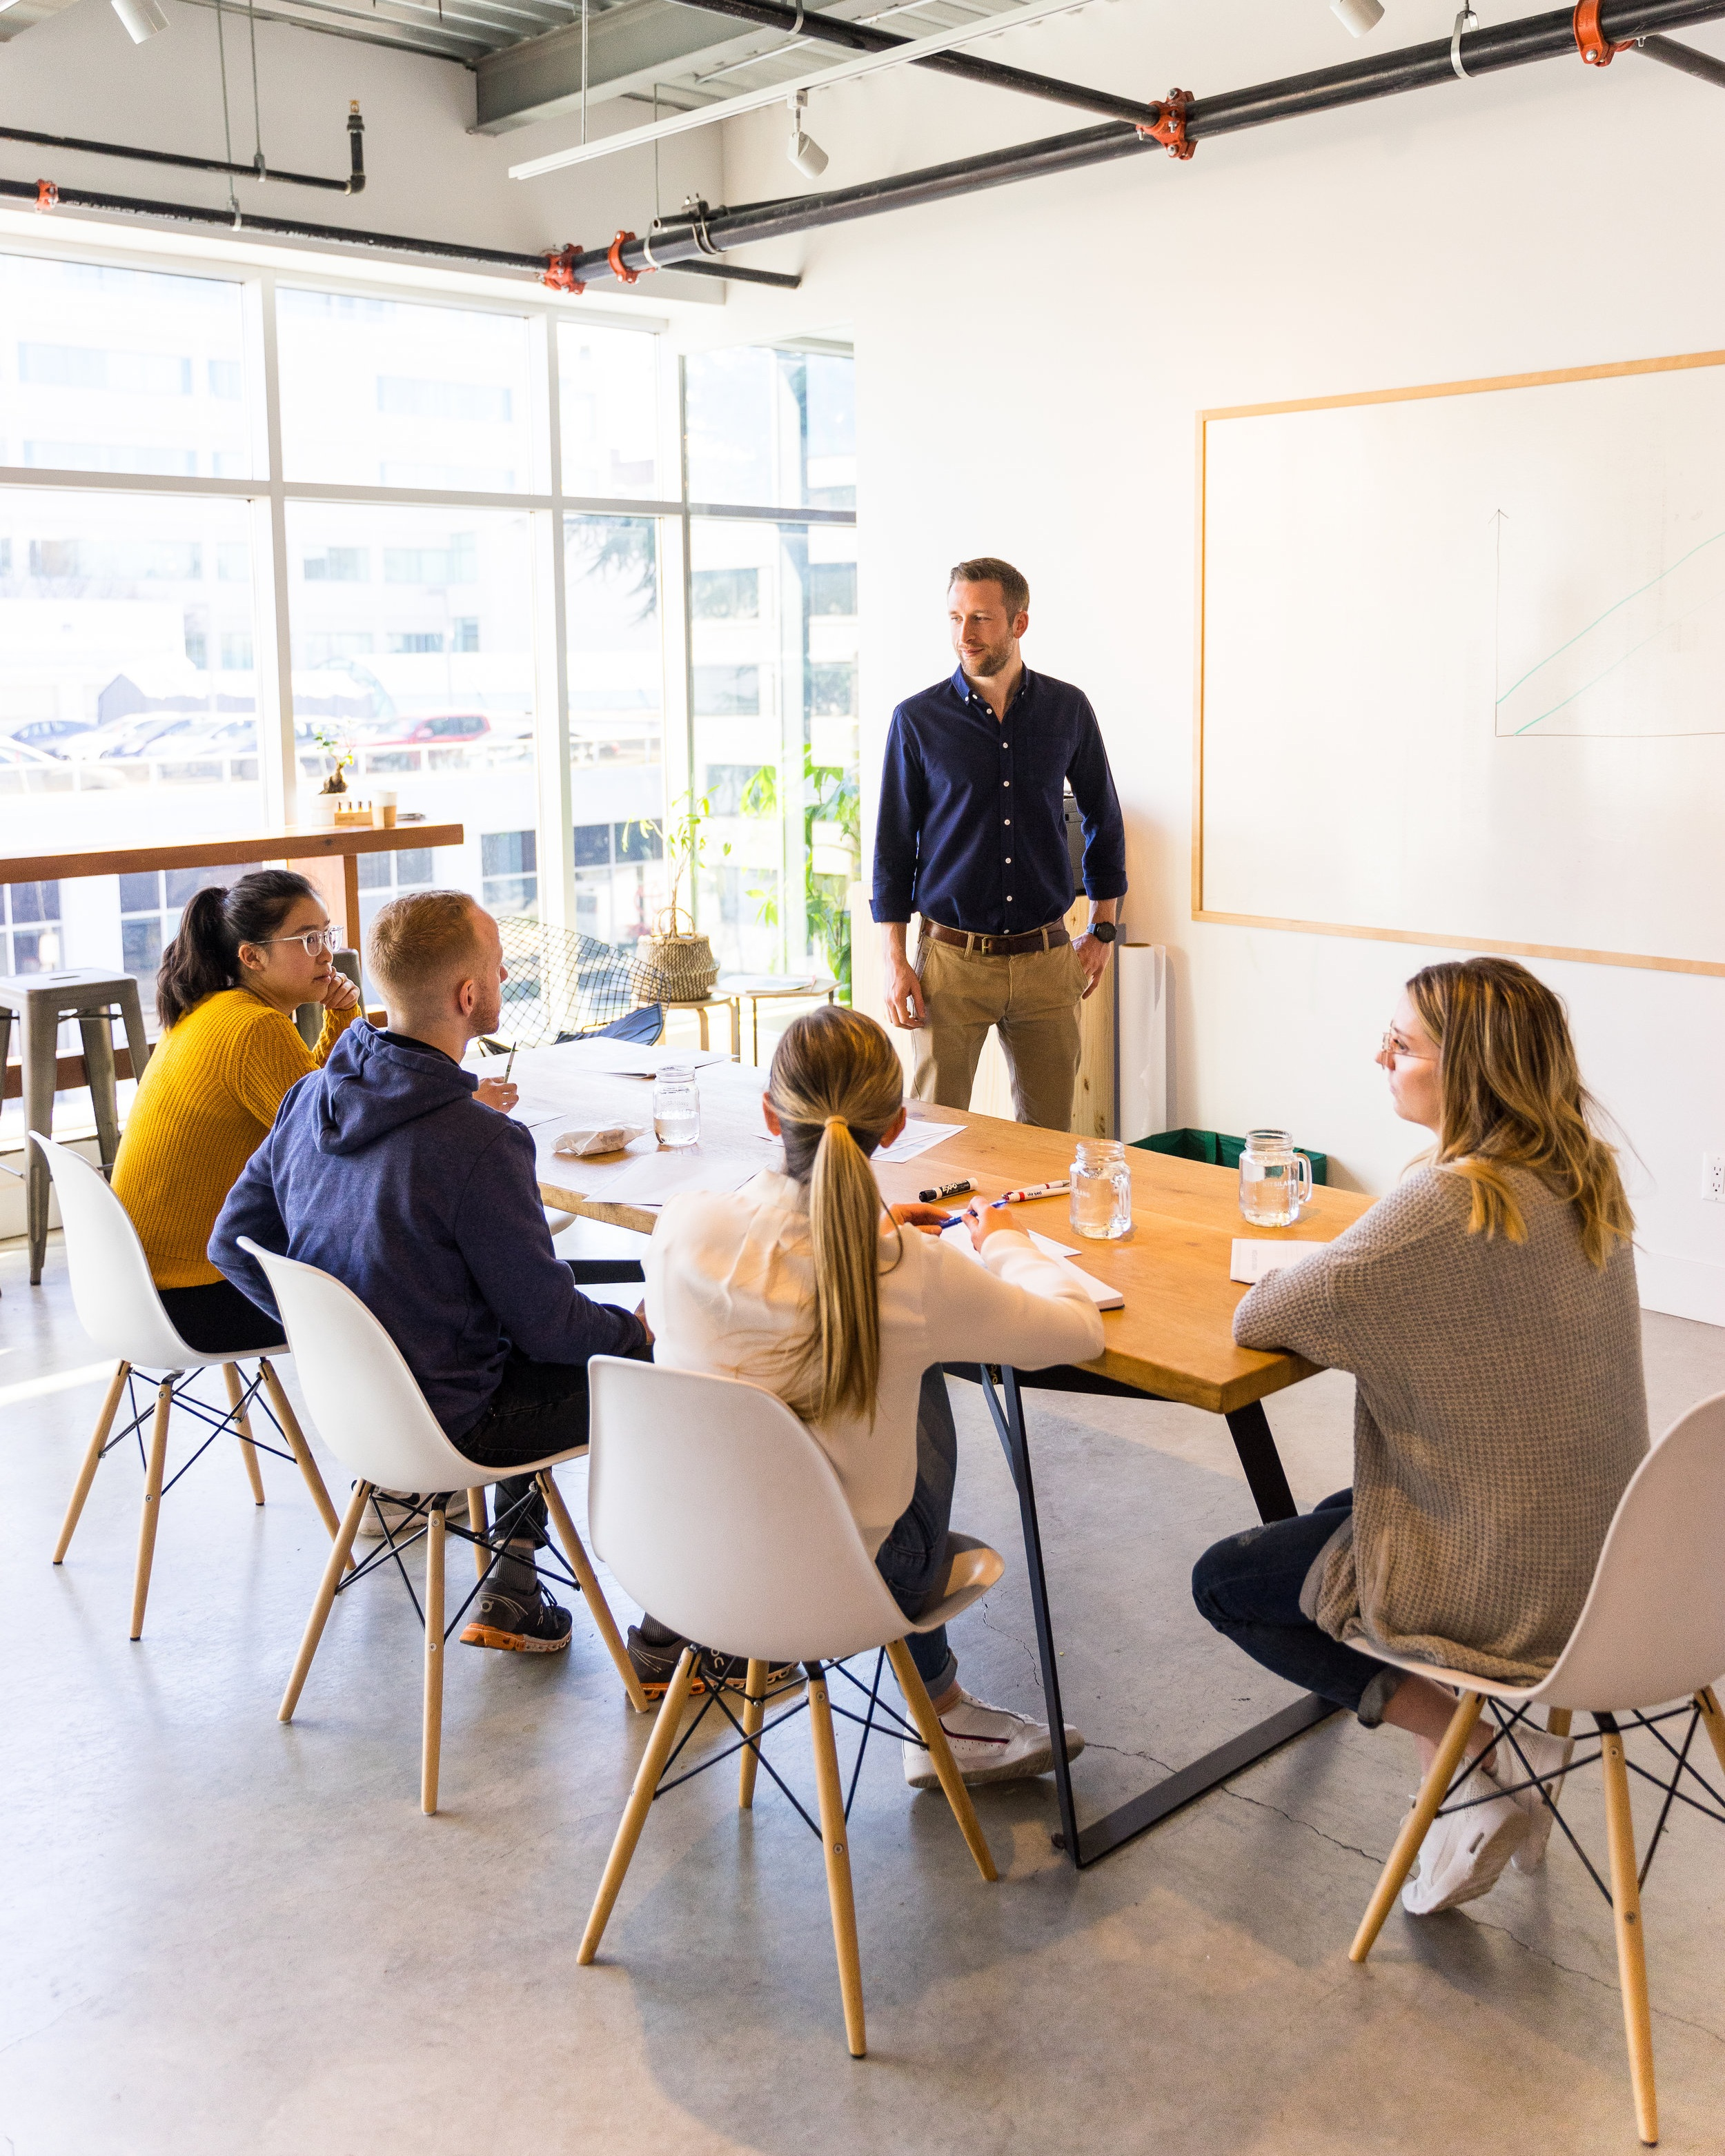 Group Coaching - A charismatic and interactive facilitates style cultivates an optimal space for learning. Some group coaching topics include:- Goal Setting / Business Planning- Defining Values- Prioritisation- Finding Flow